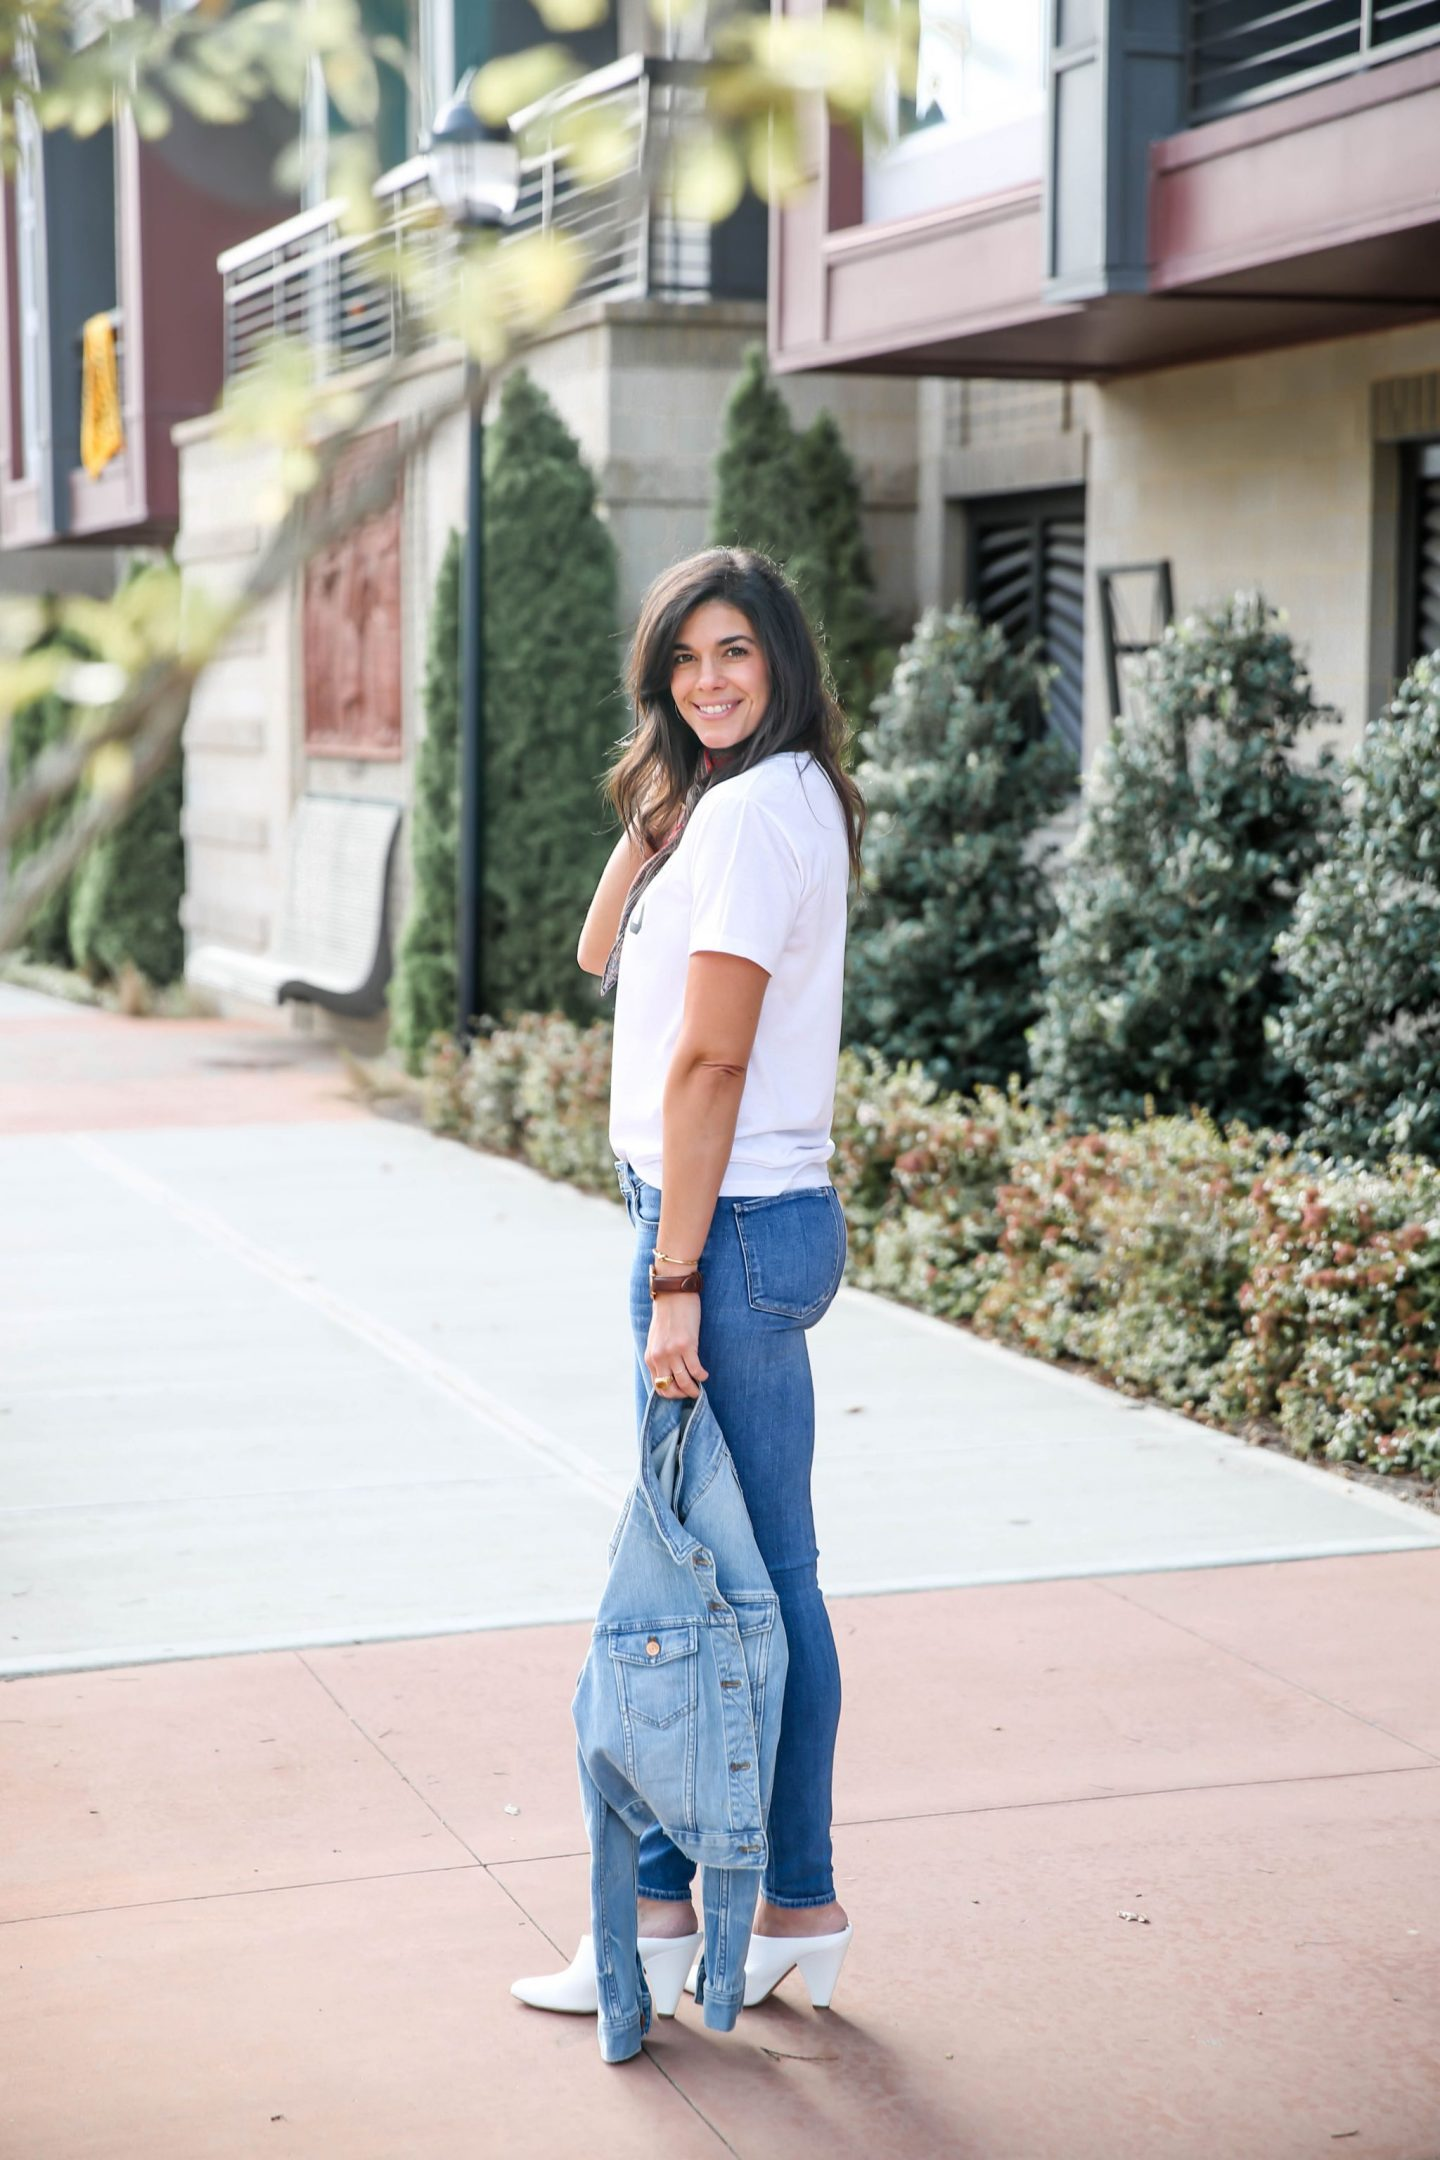 skinny jeans - denim jacket - Lauren Schwaiger Style Blog